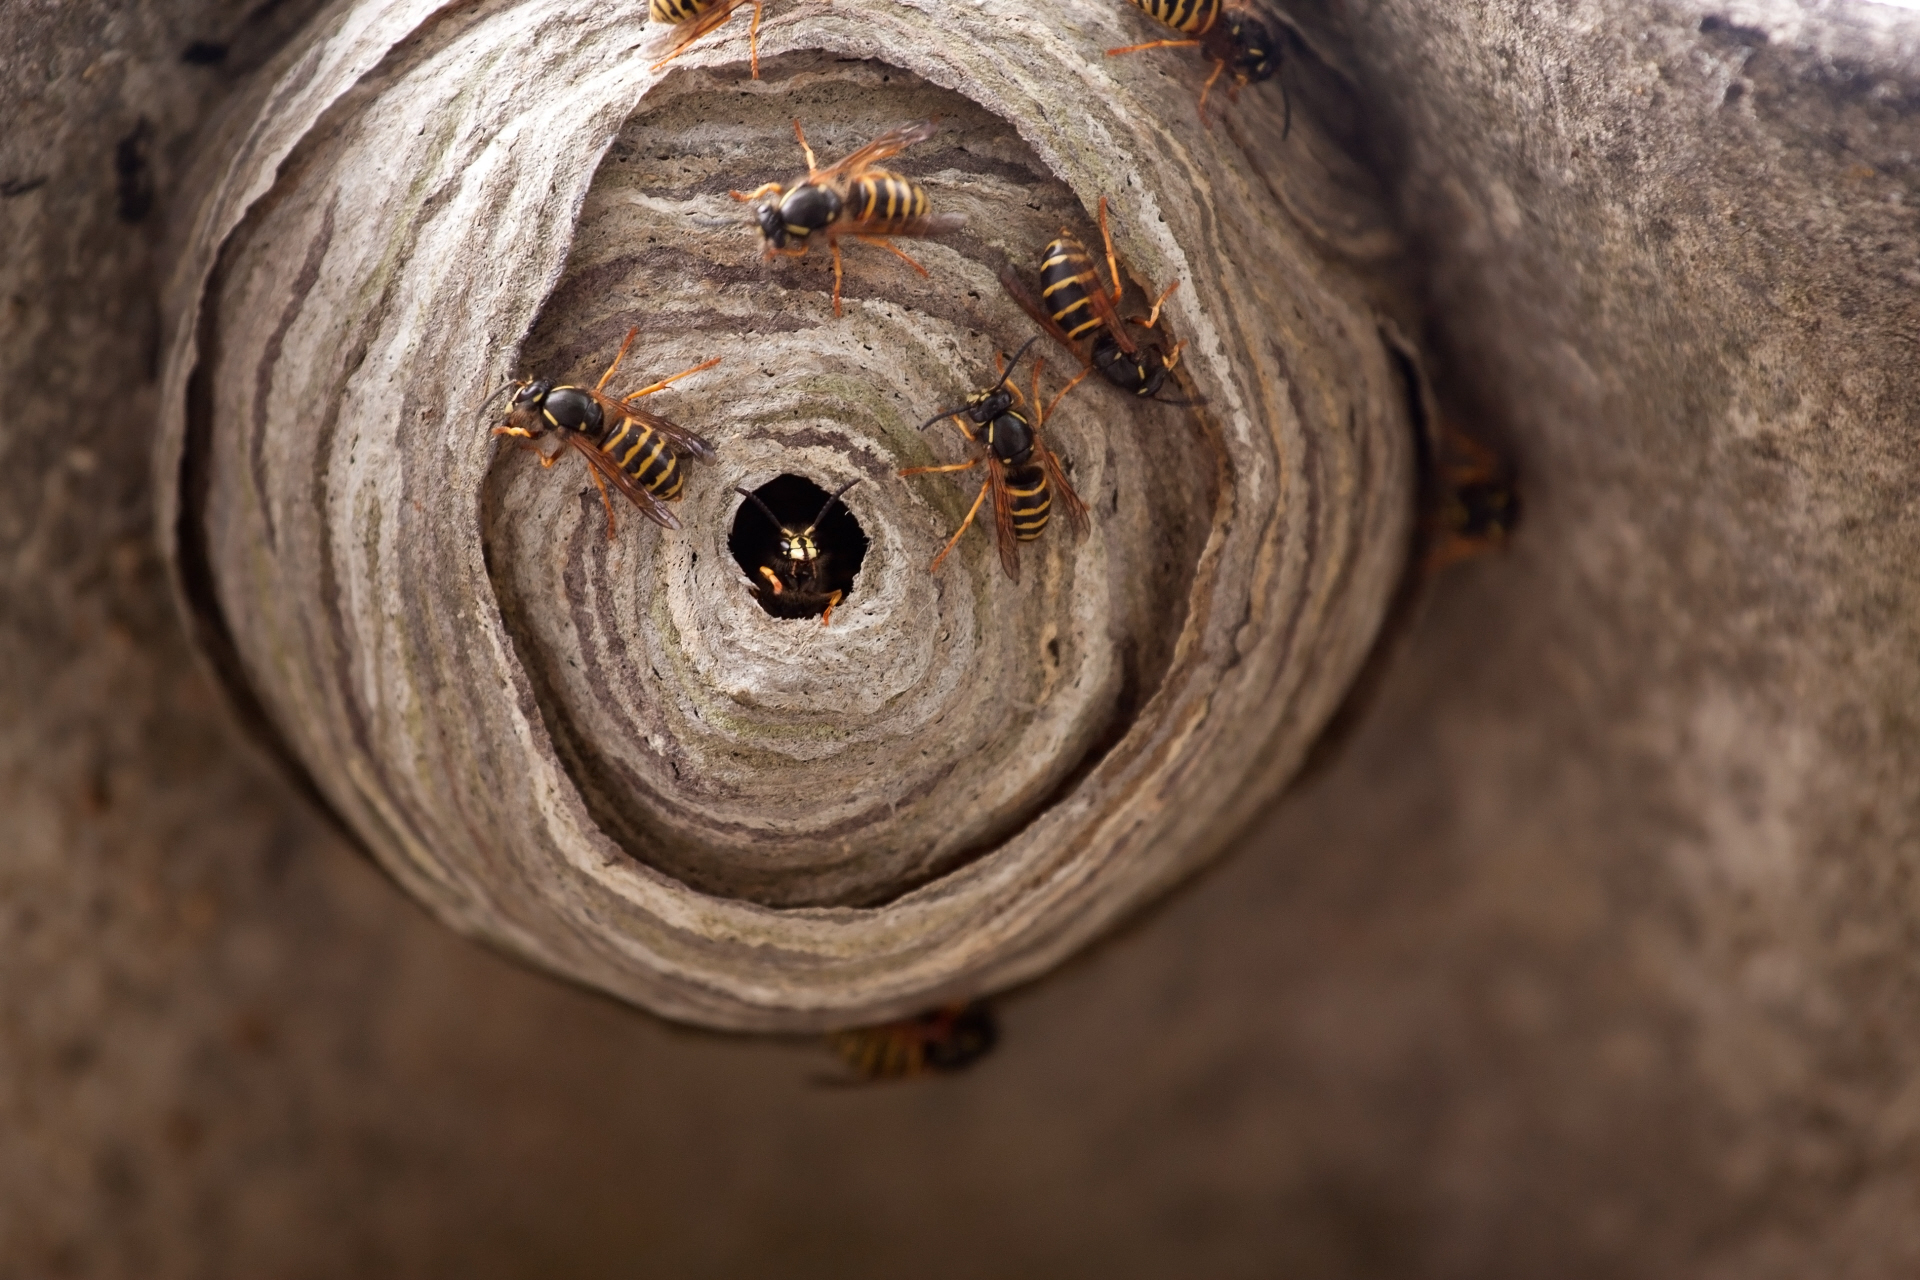 What To Do About A Wasp Nest